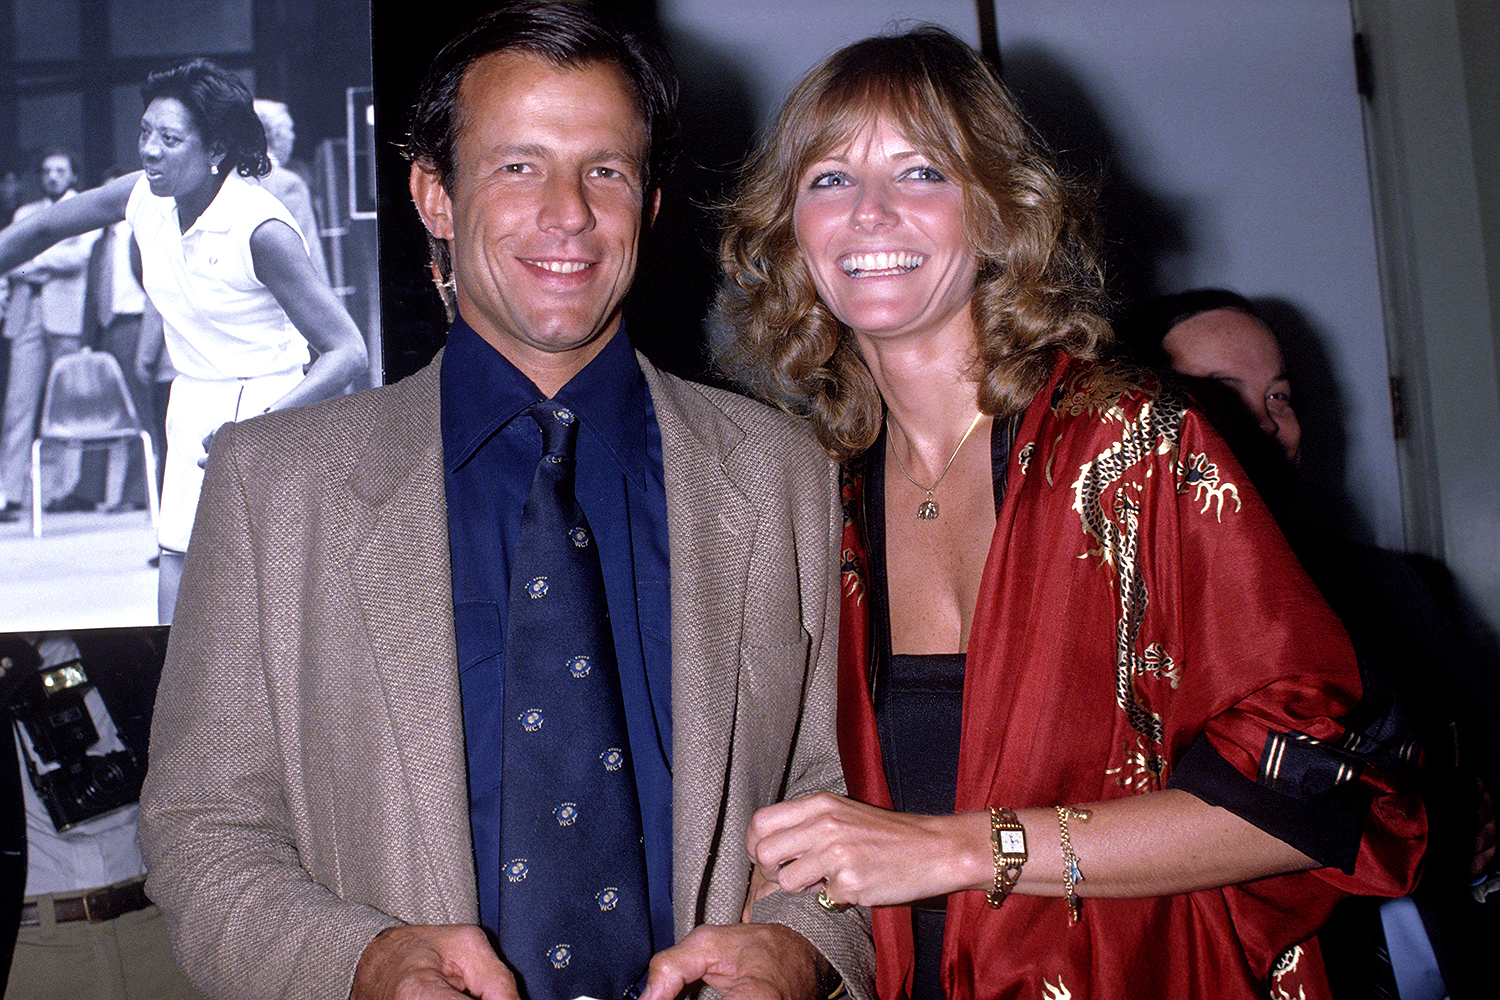 Cheryl Tiegs and Peter Beard